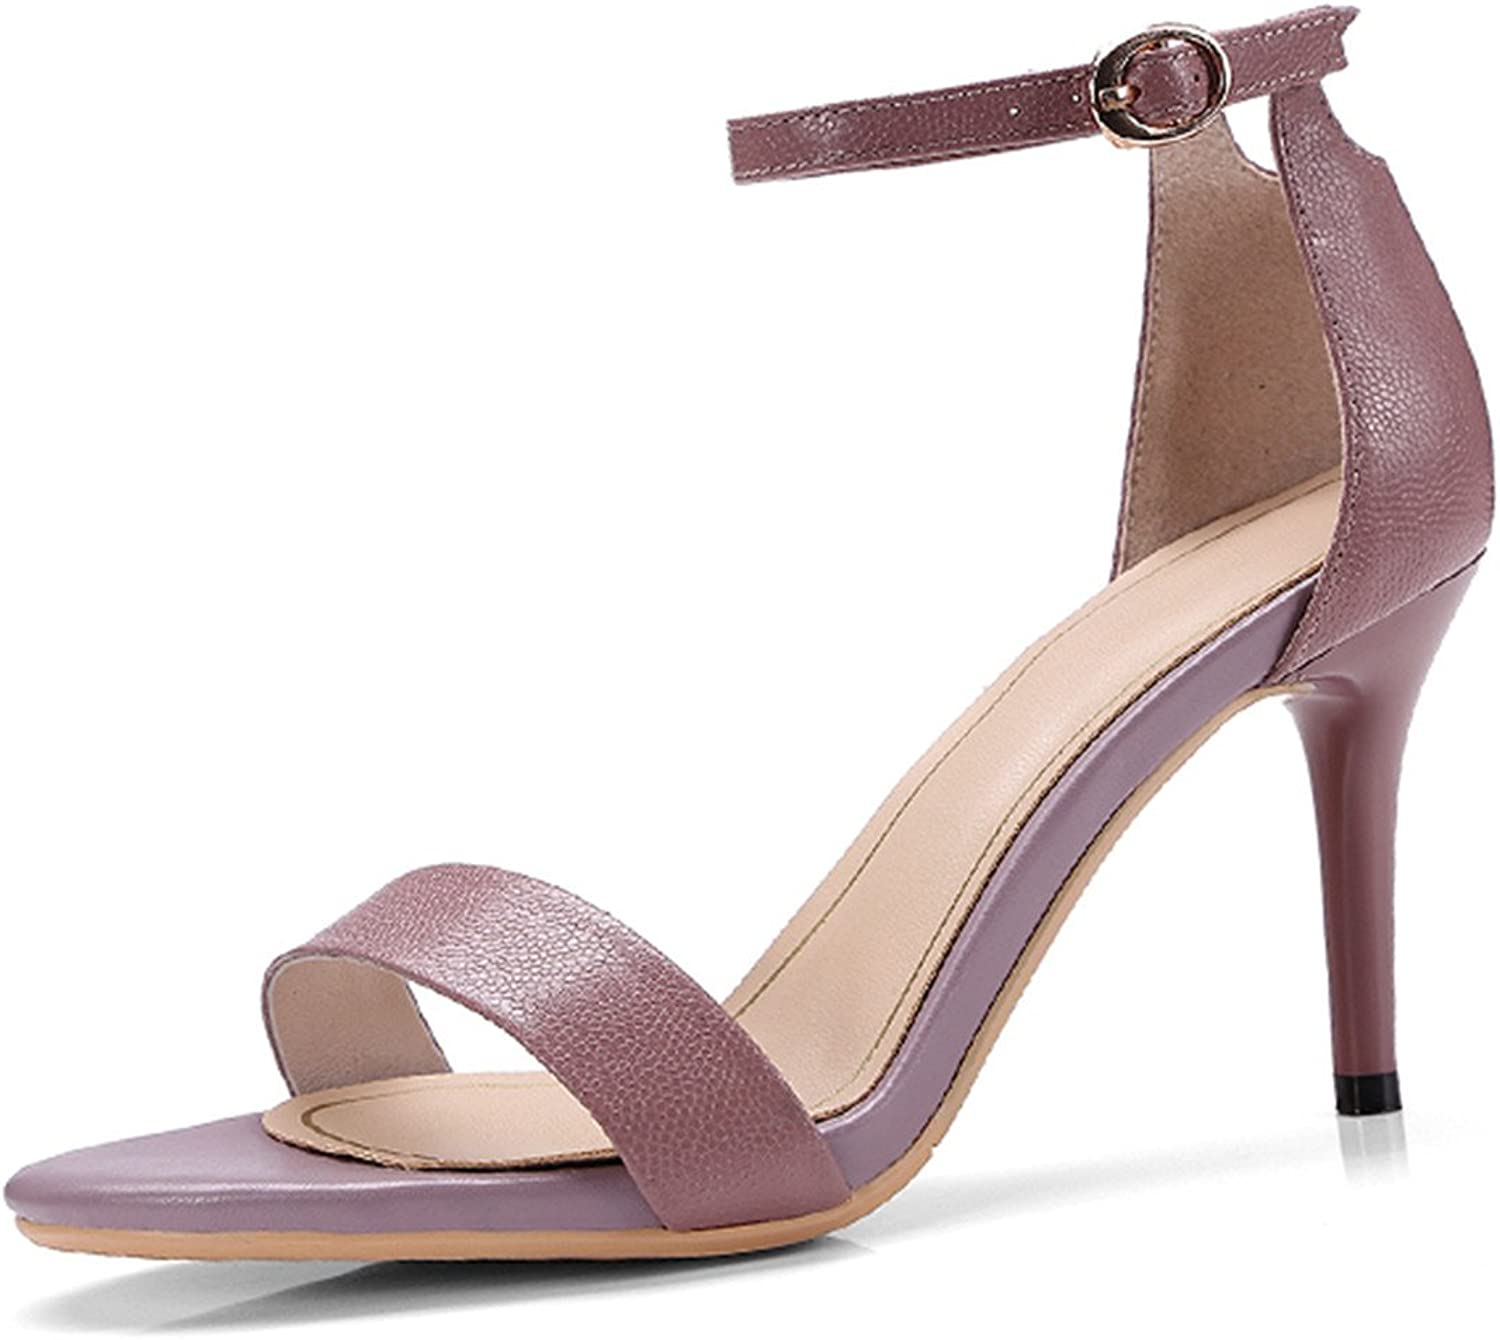 Sandals Open Toe Cow Leather Thin Heels Footwear 2018 New Buckle Ladies Ankle Strap Summer Office shoes